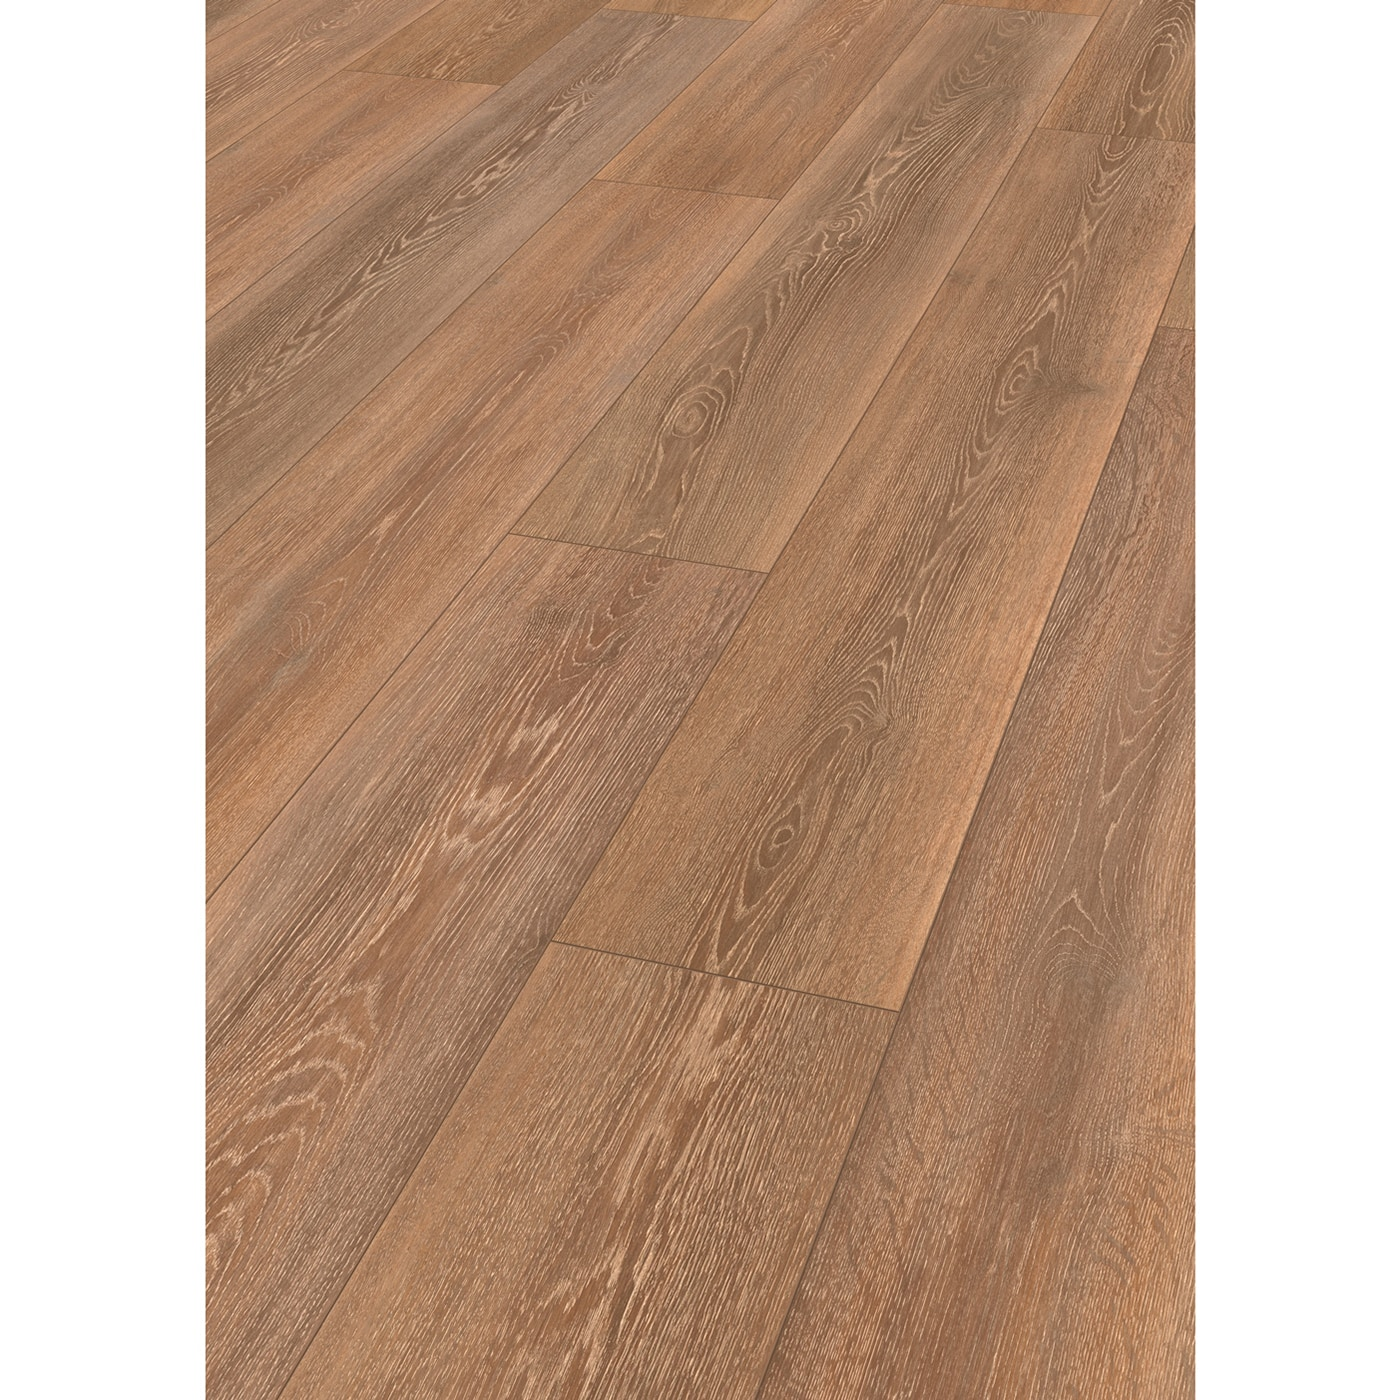 Kronotex laminate exquisit 8mm collection stirling oak for Kronotex laminate